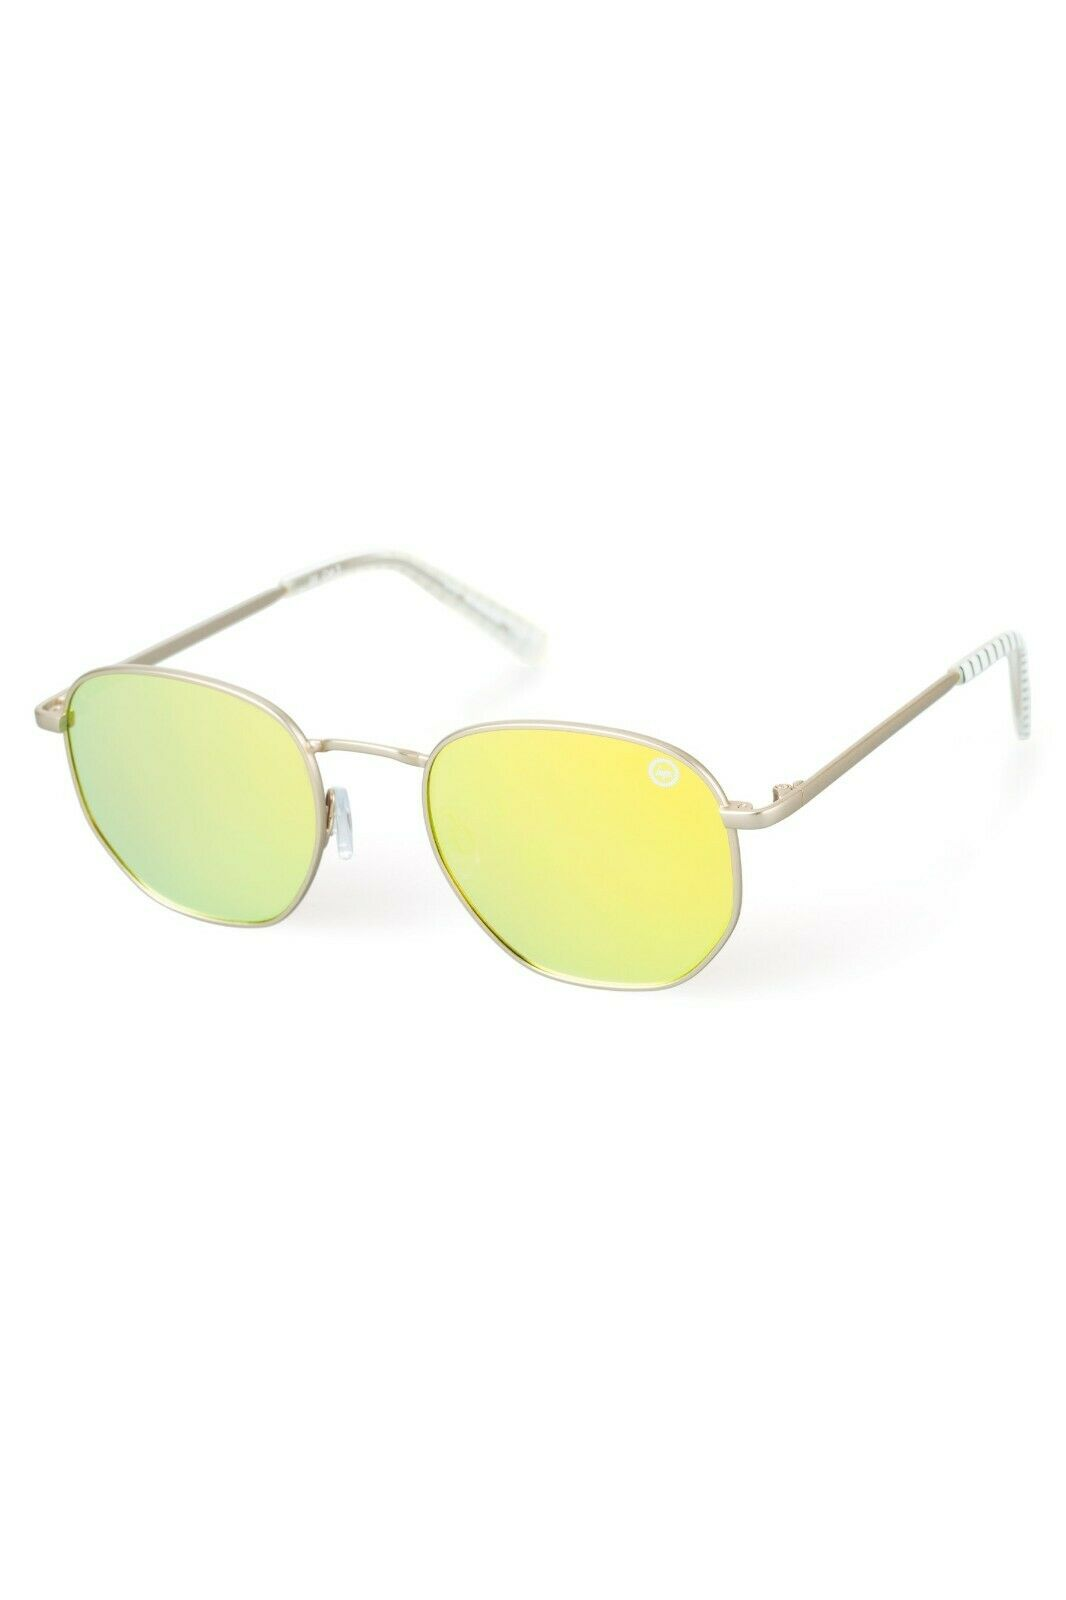 HYPE GOLD YELLOW GEO SUNGLASSES ***Brand New with Tags*** RRP